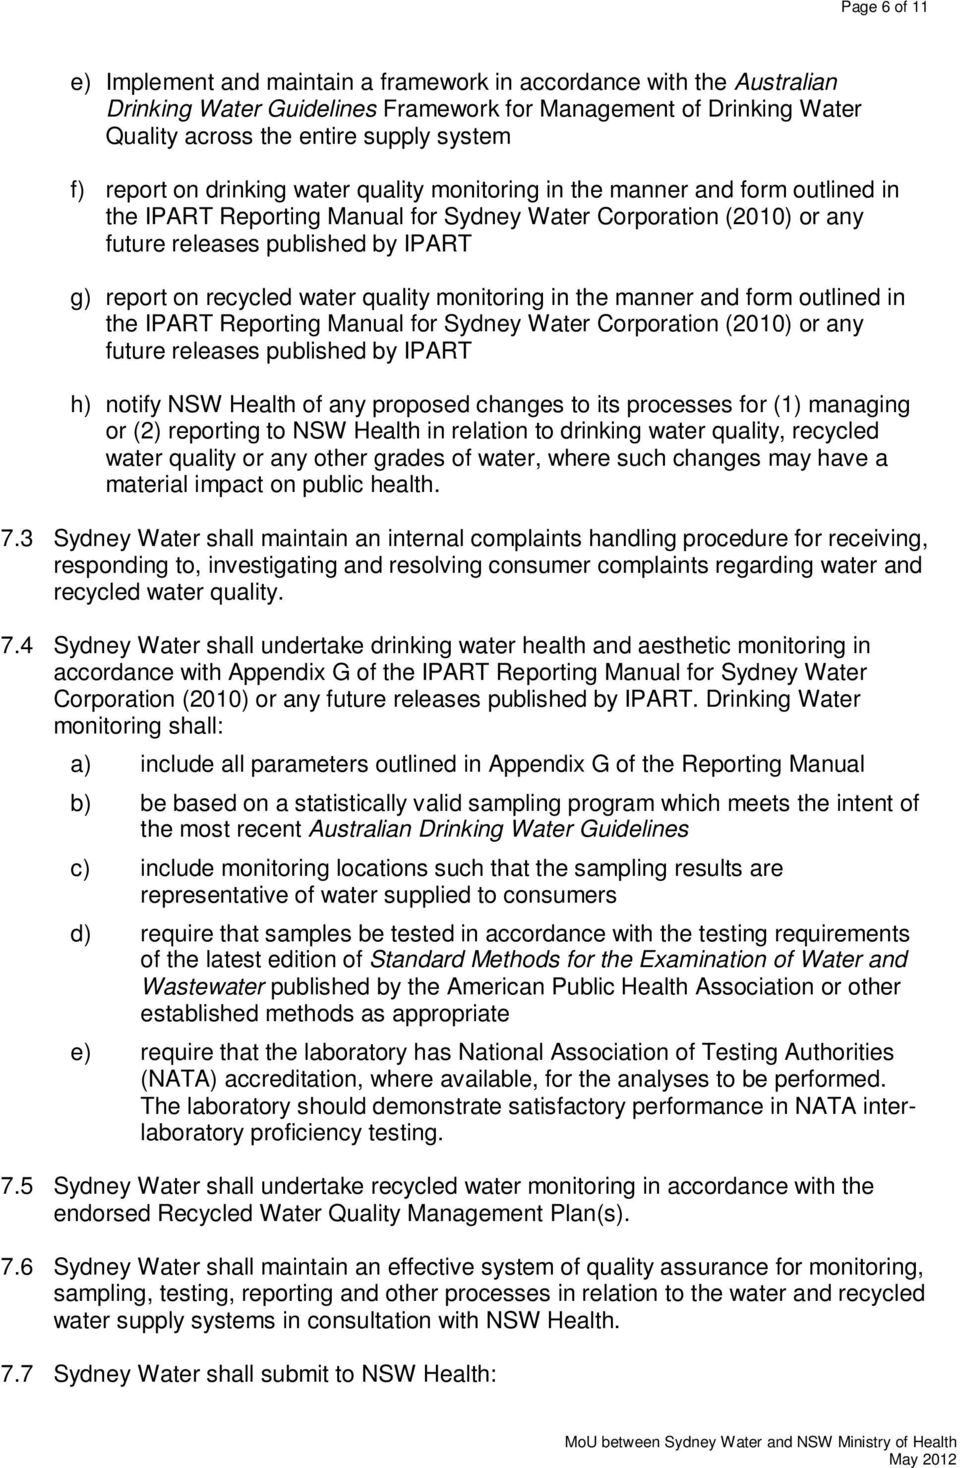 recycled water quality monitoring in the manner and form outlined in the IPART Reporting Manual for Sydney Water Corporation (2010) or any future releases published by IPART h) notify NSW Health of